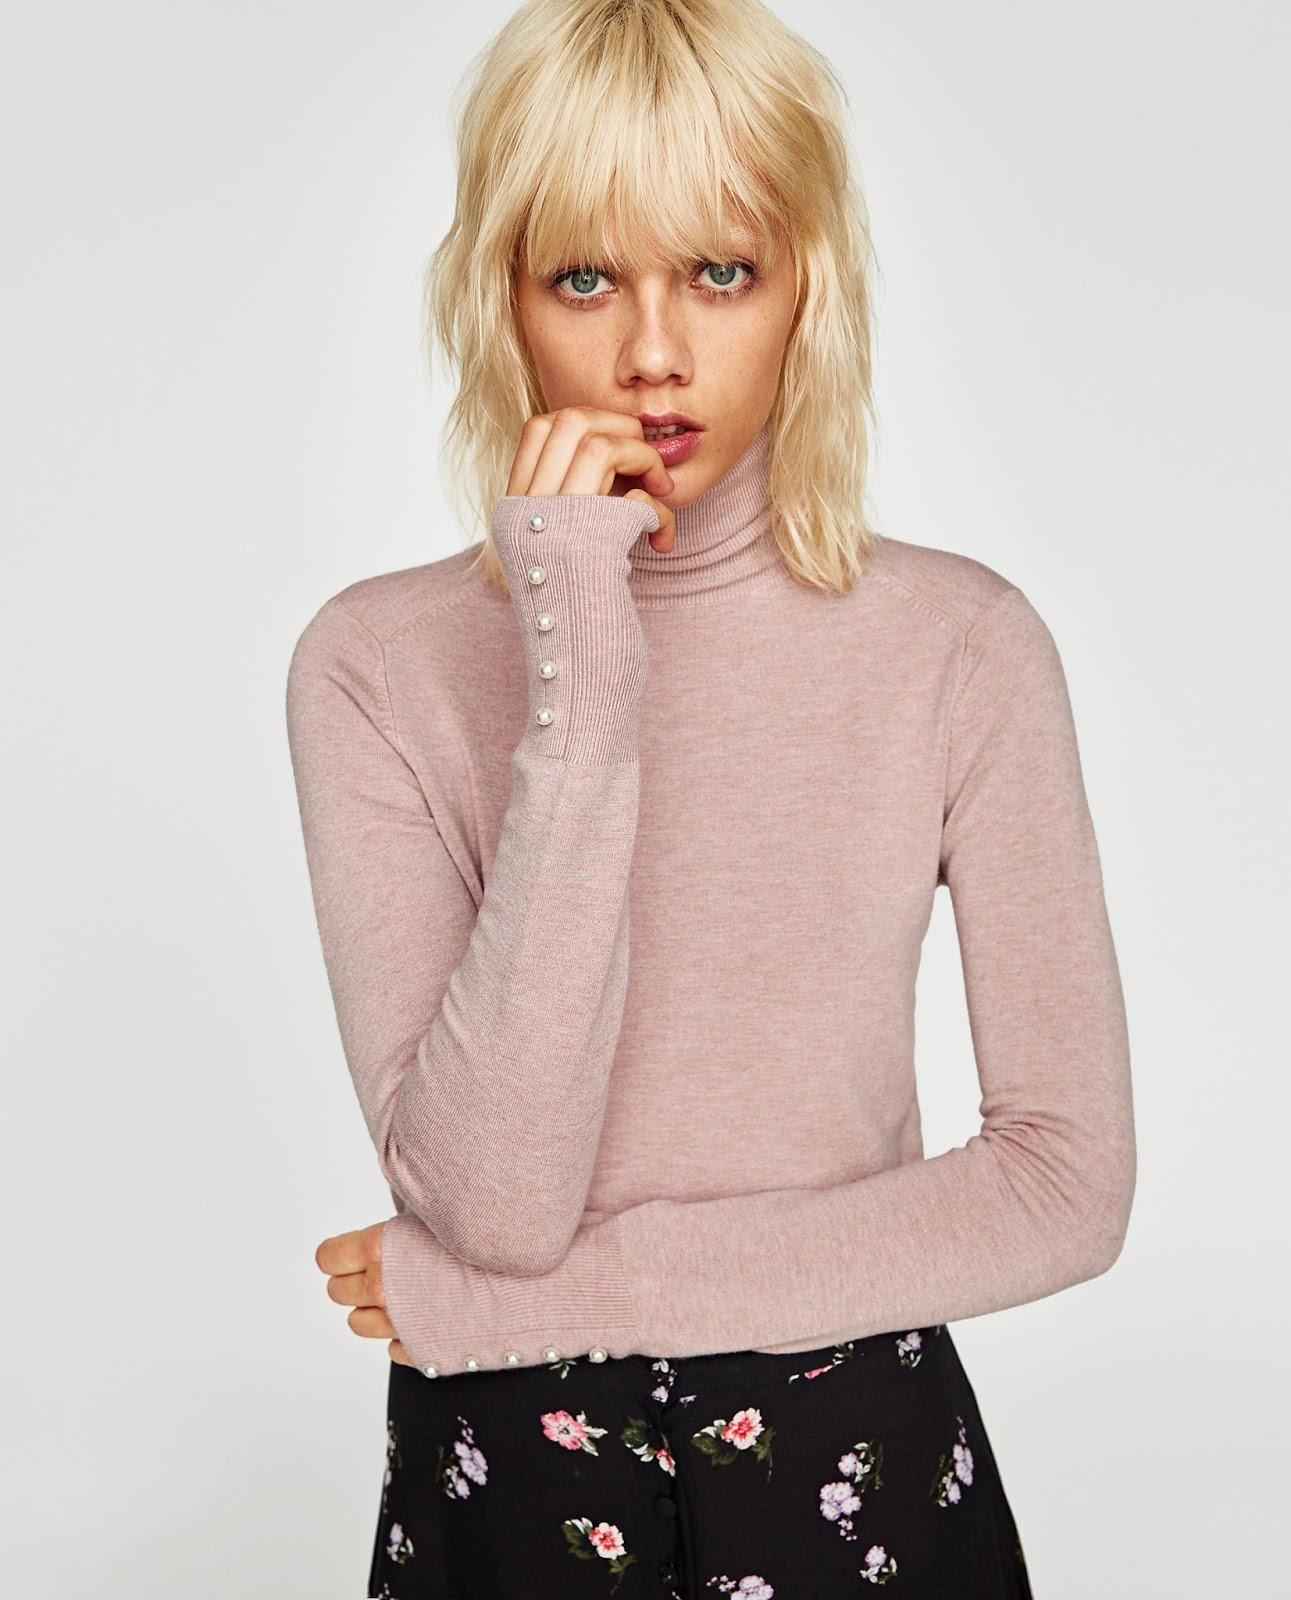 Souvent BEAUTYFASHION: Hot Now - Turtleneck Sweaters SG61